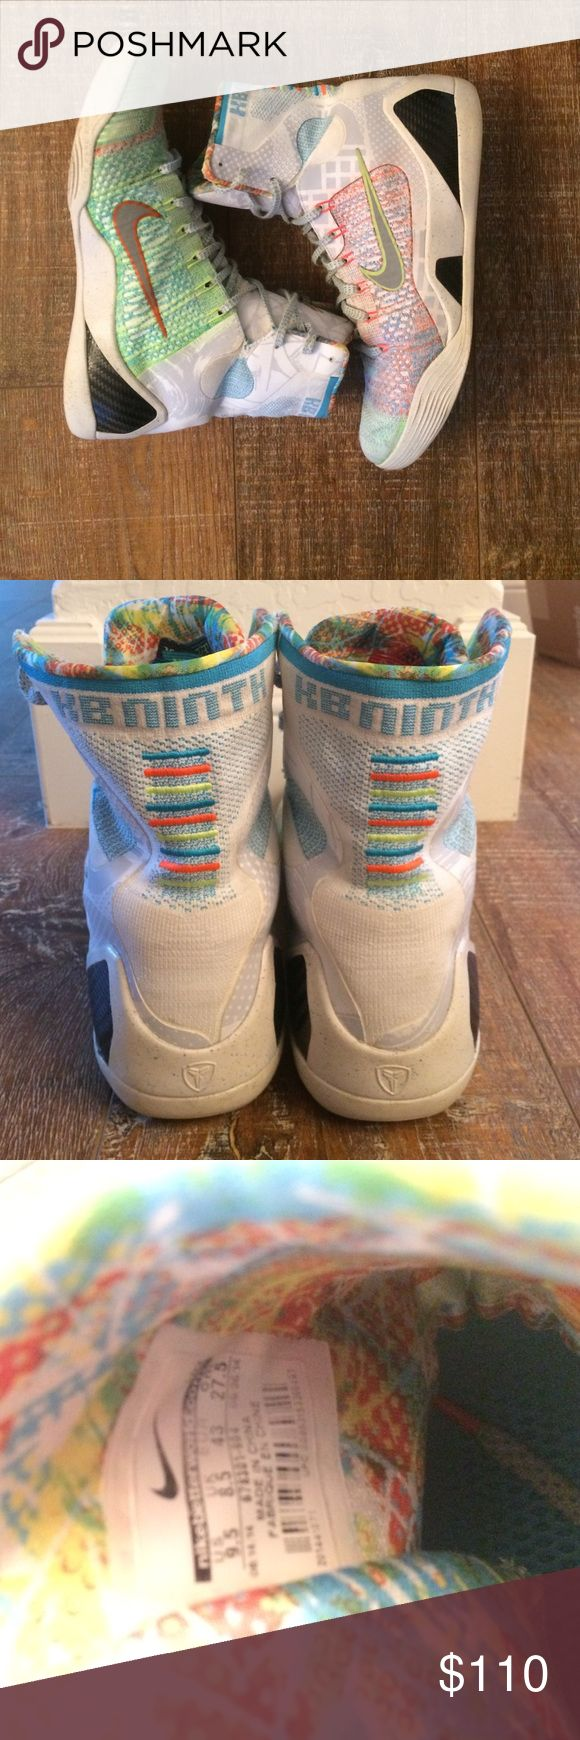 "Nike Kobe 9 ""What The"" High top basketball shoe, 8/10 condition, really comfortable, great grip. Nike Shoes Sneakers"